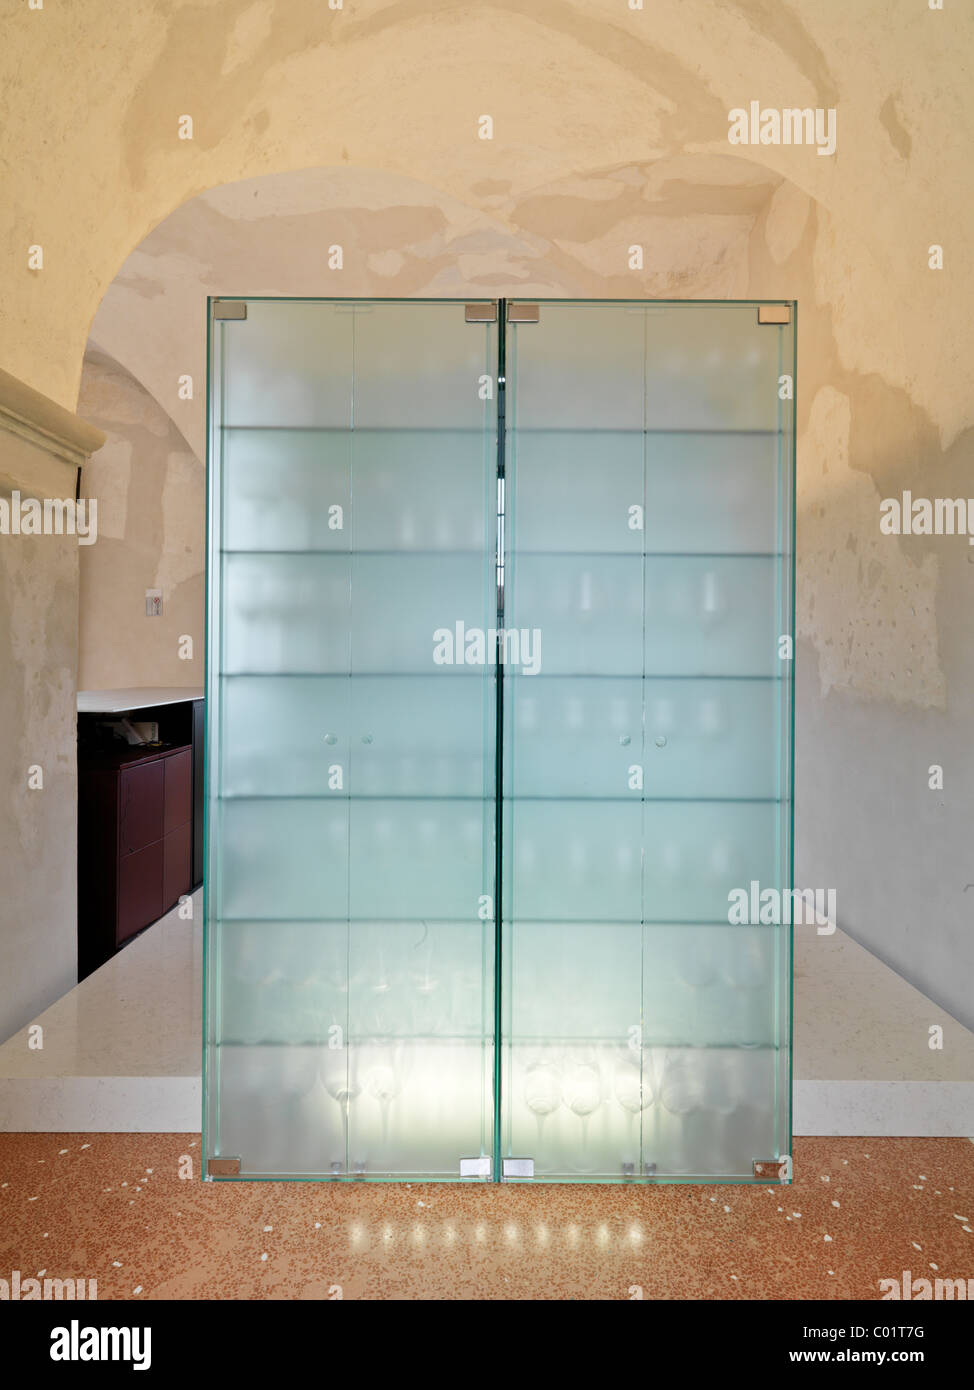 glass showcase in a bar inside a restaurant obtained by restoration of a  ancient building of the 15th century - Stock Image